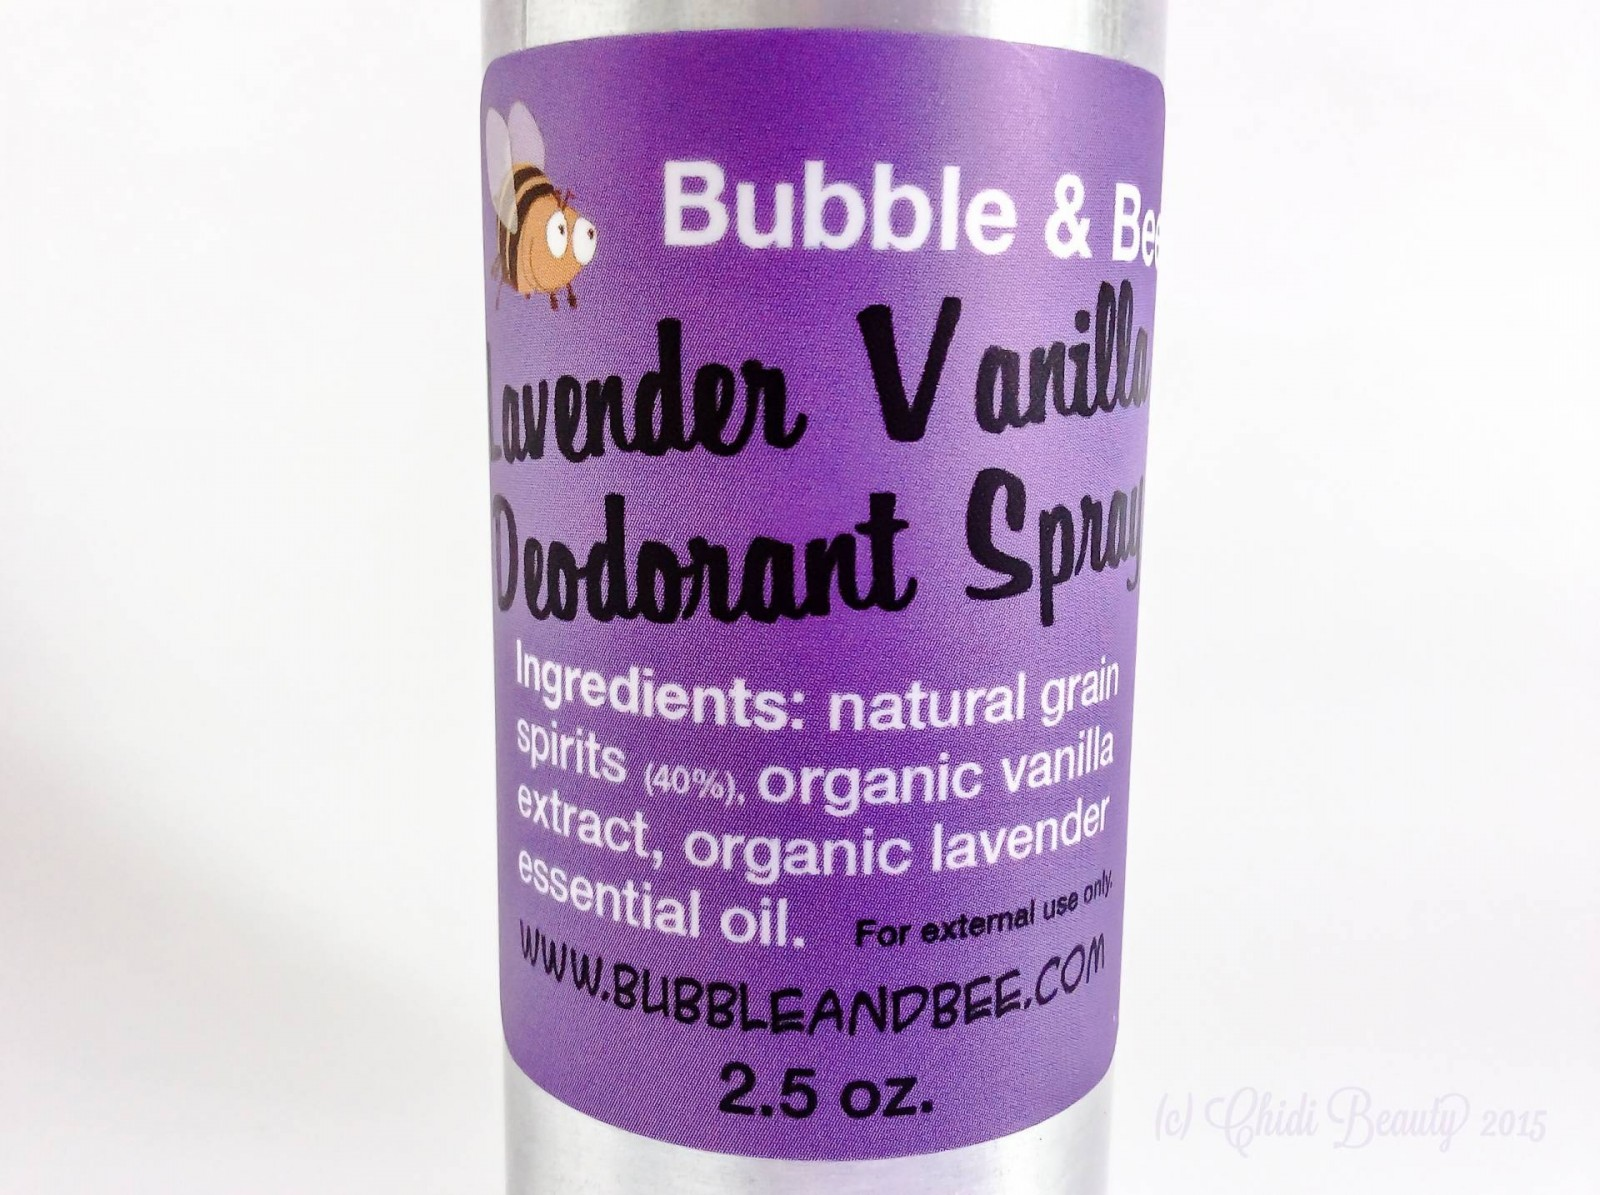 Bubble & Bee Organic Deodorant Spray in Lavender Vanilla (2.5 oz)